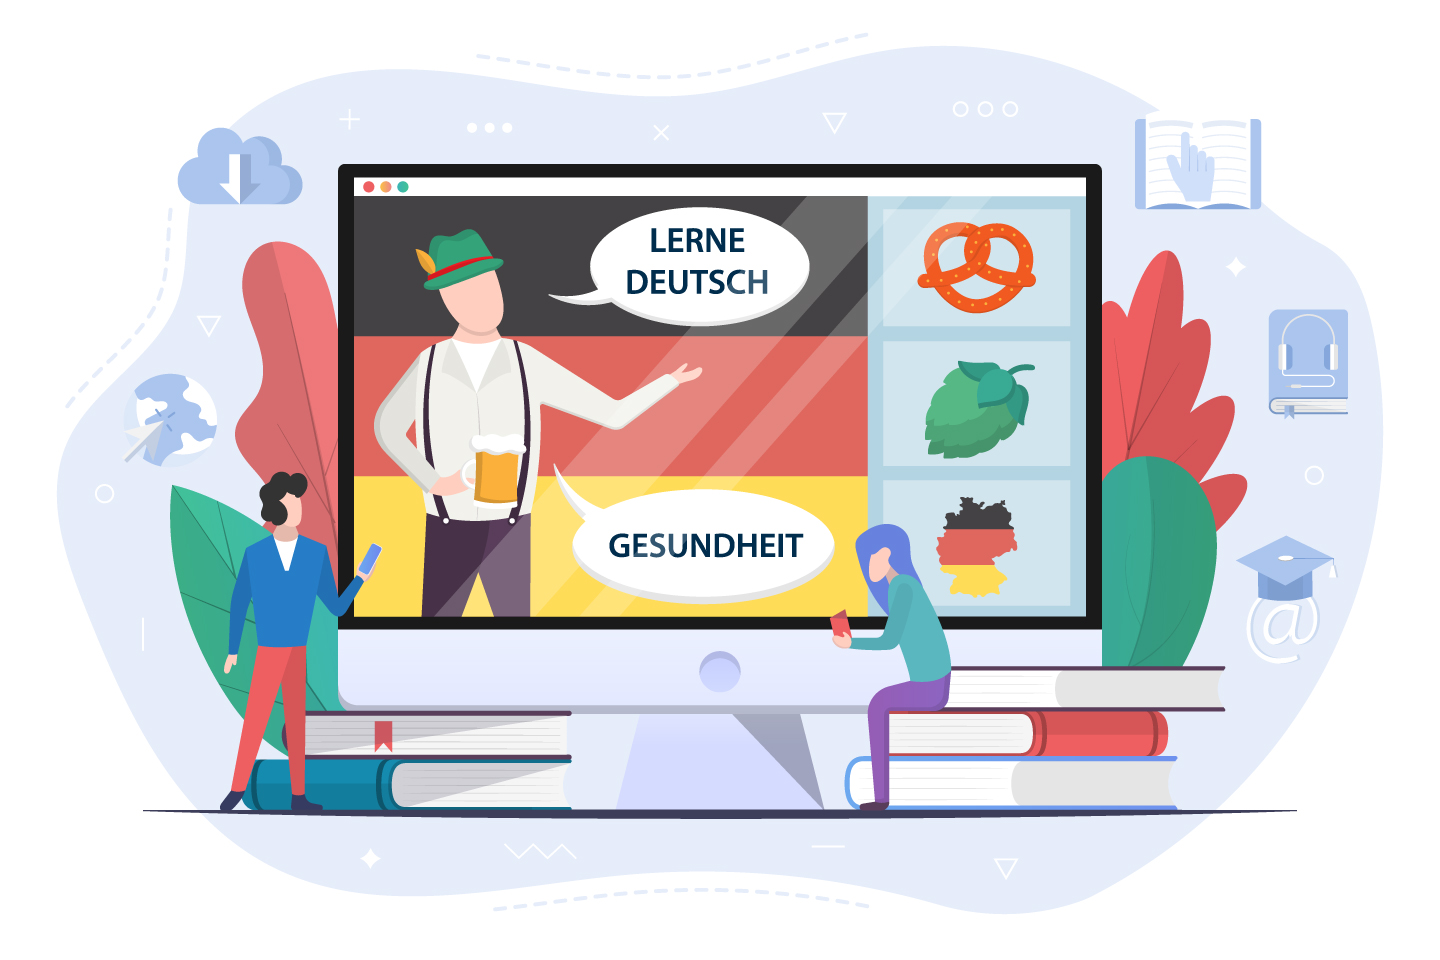 Learn German language Concept